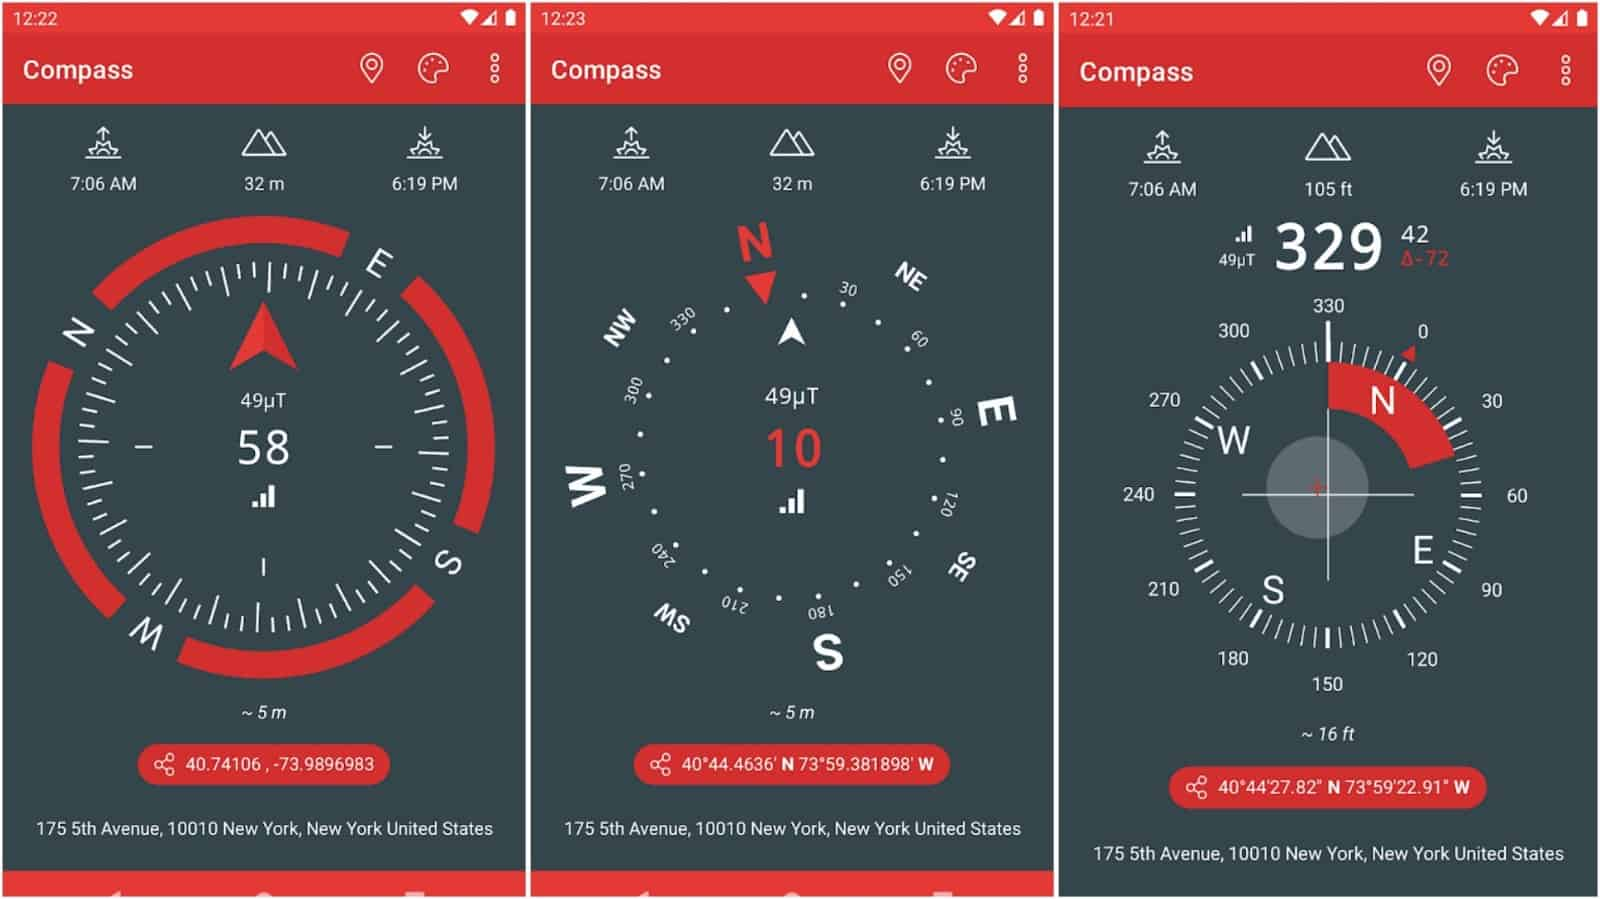 Just a Compass app grid image